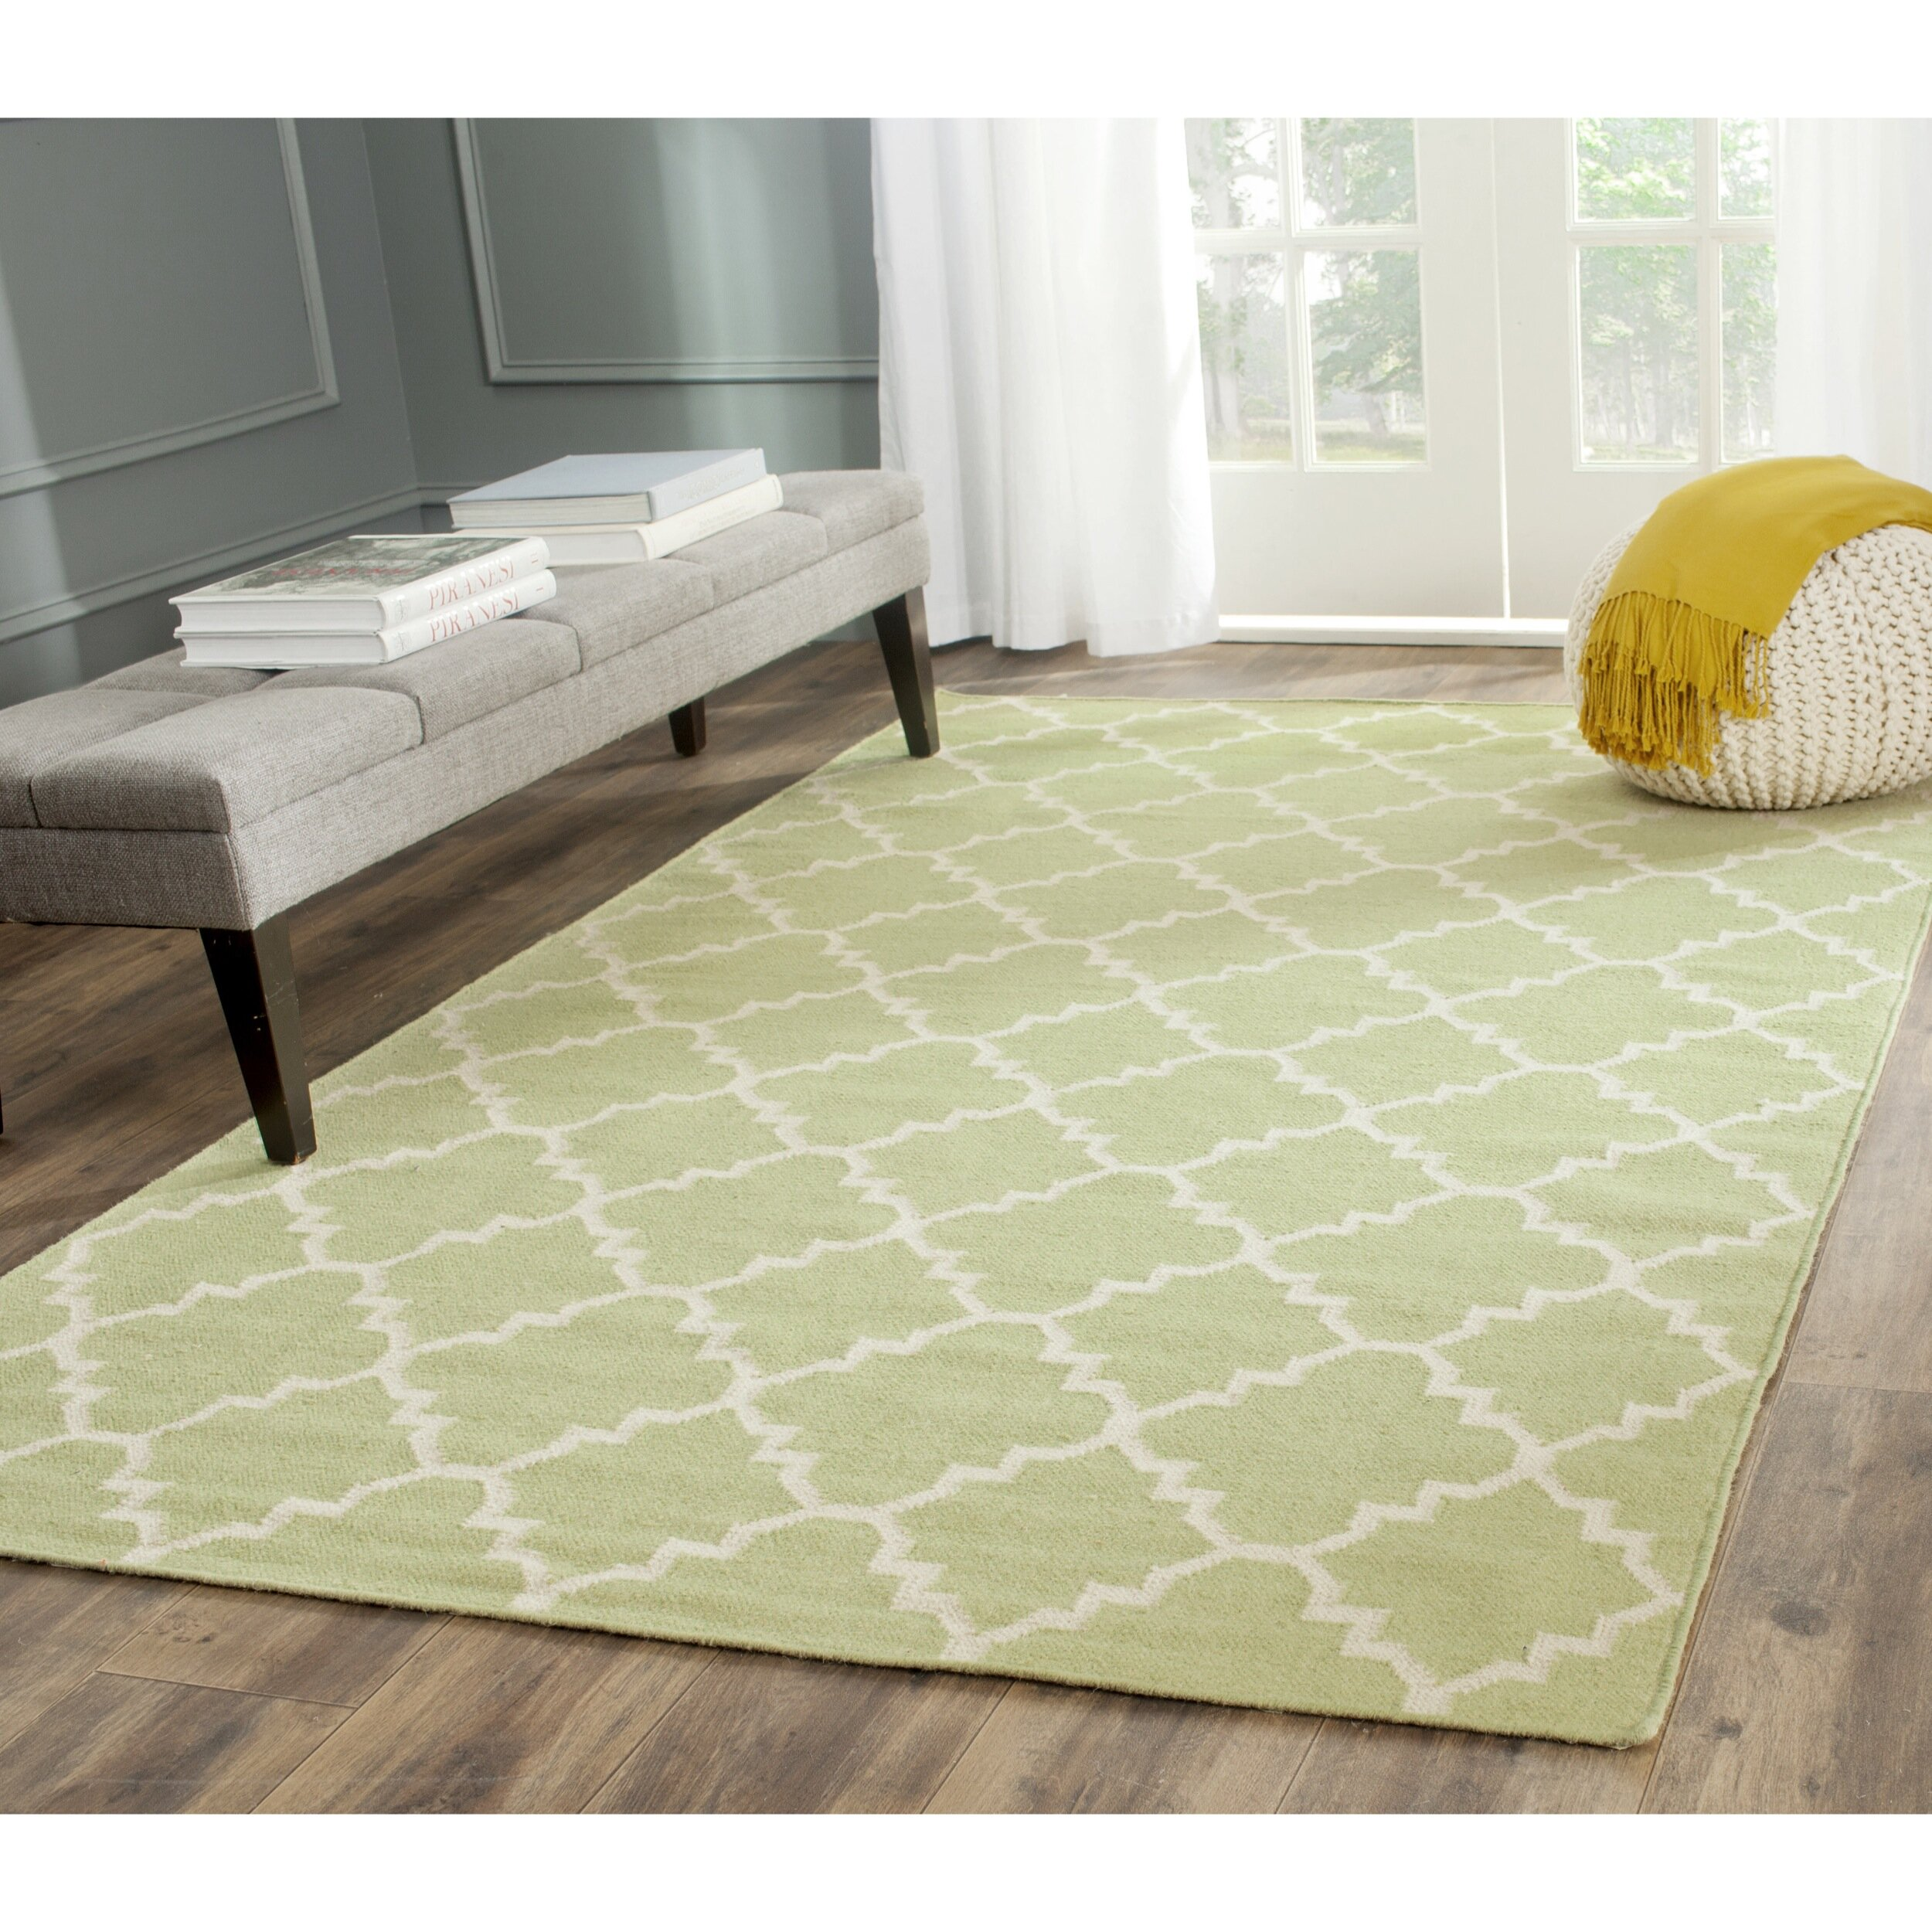 Checked Area Rugs: Safavieh Dhurries Green/Ivory Checked Area Rug & Reviews